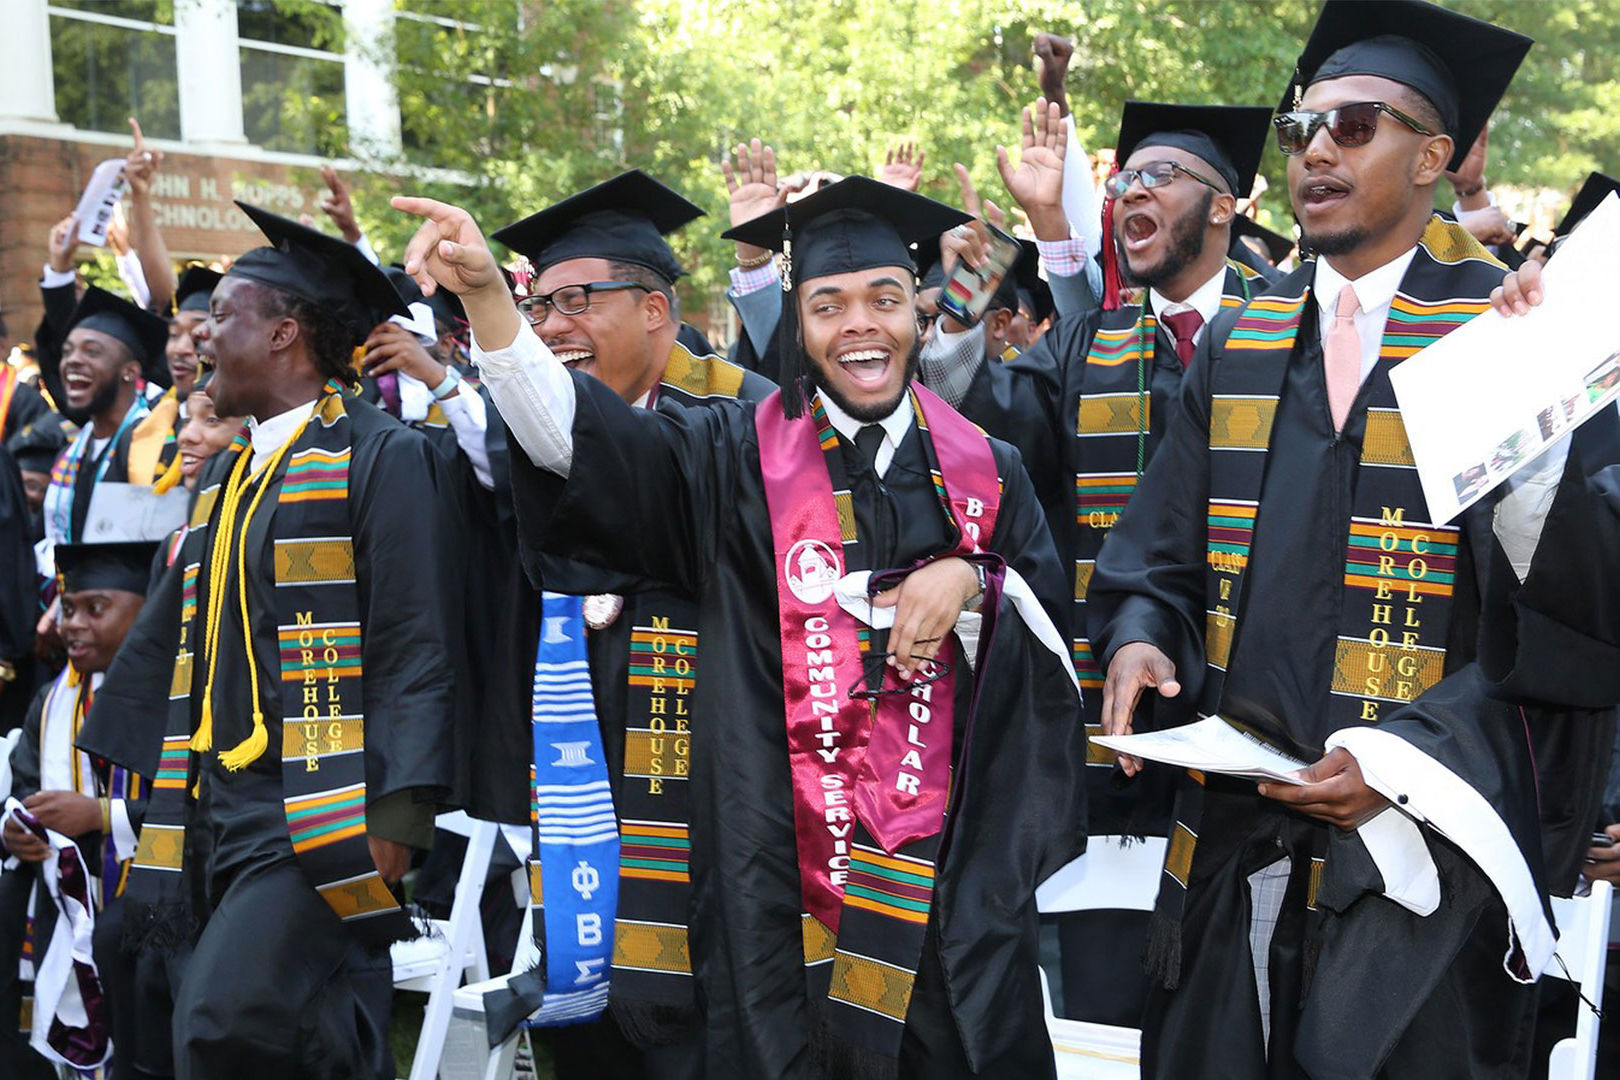 Morehouse College Grads Share Plans to Pay It Forward After Billionaire's Pledge to Pay Loan Debt